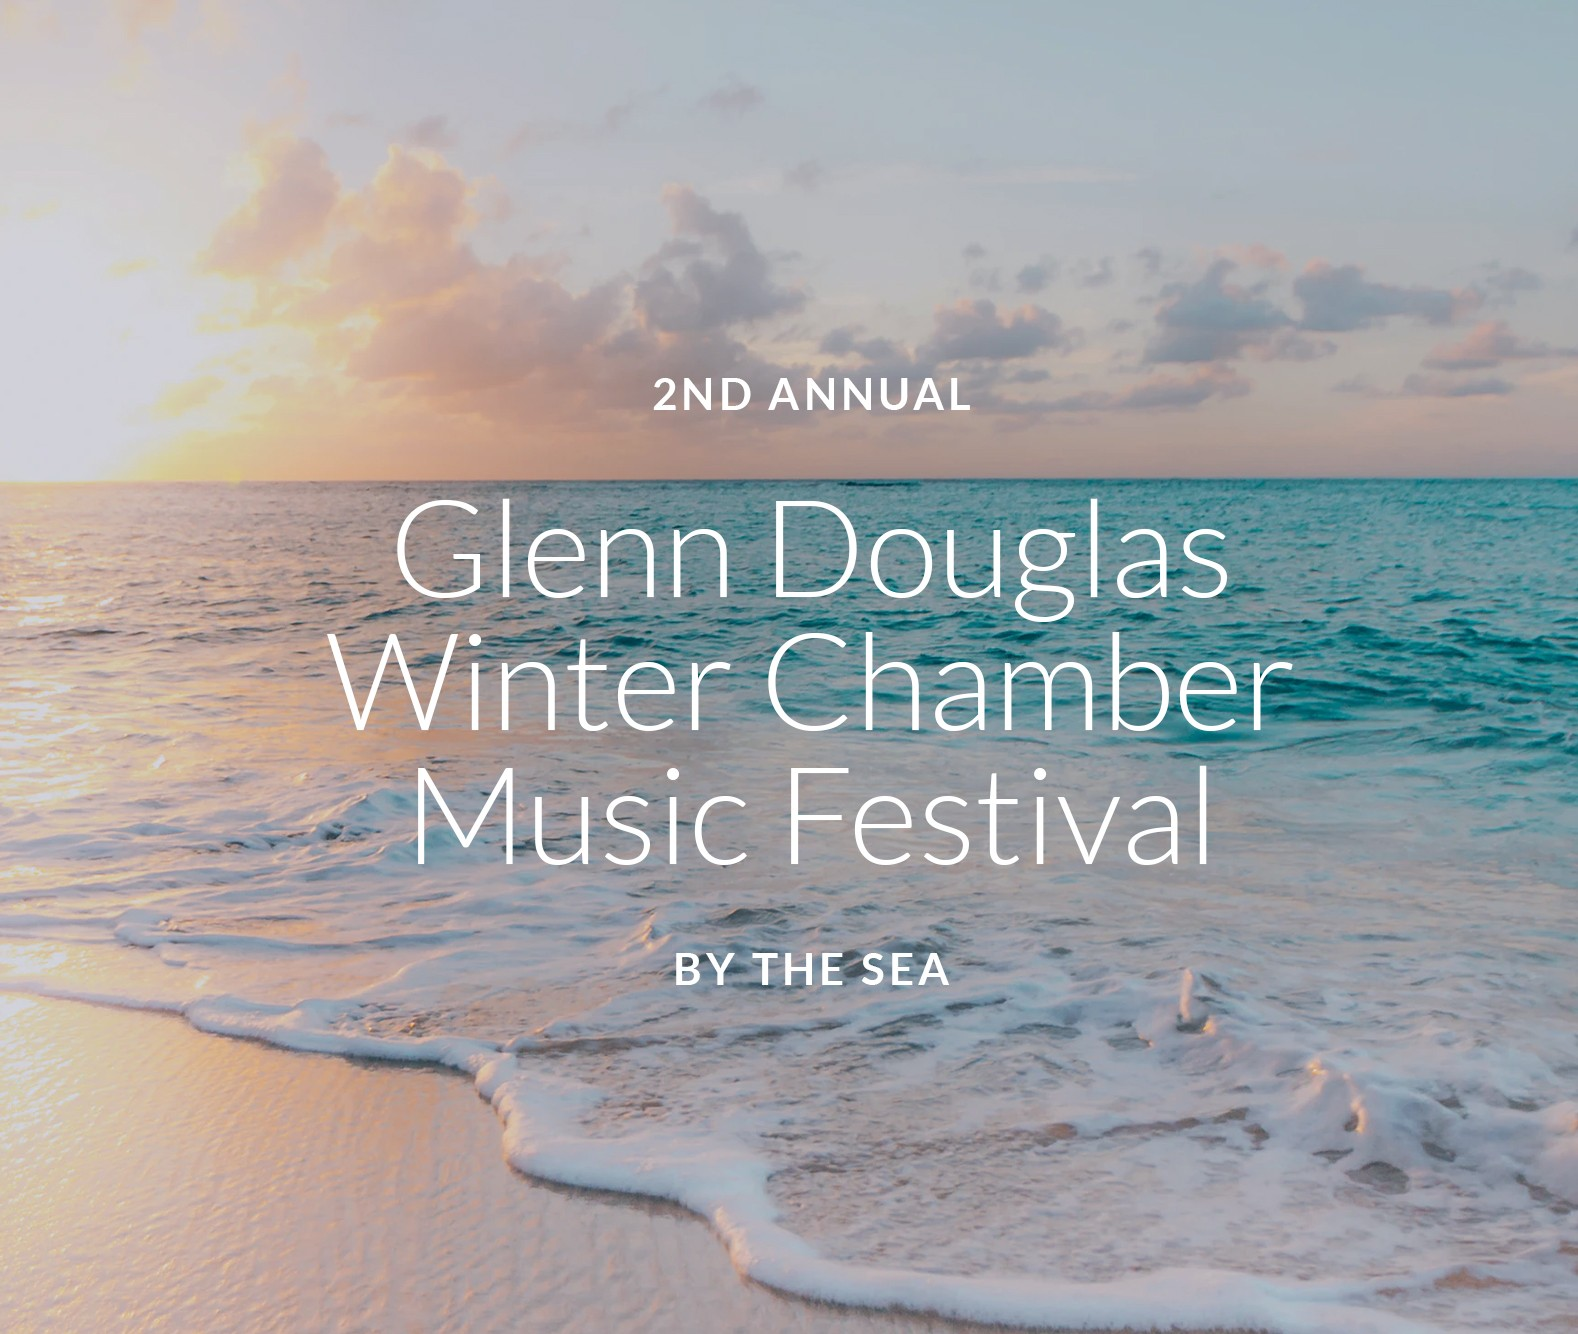 2nd annual Glenn Douglas Winter Chamber Music Festival by the sea